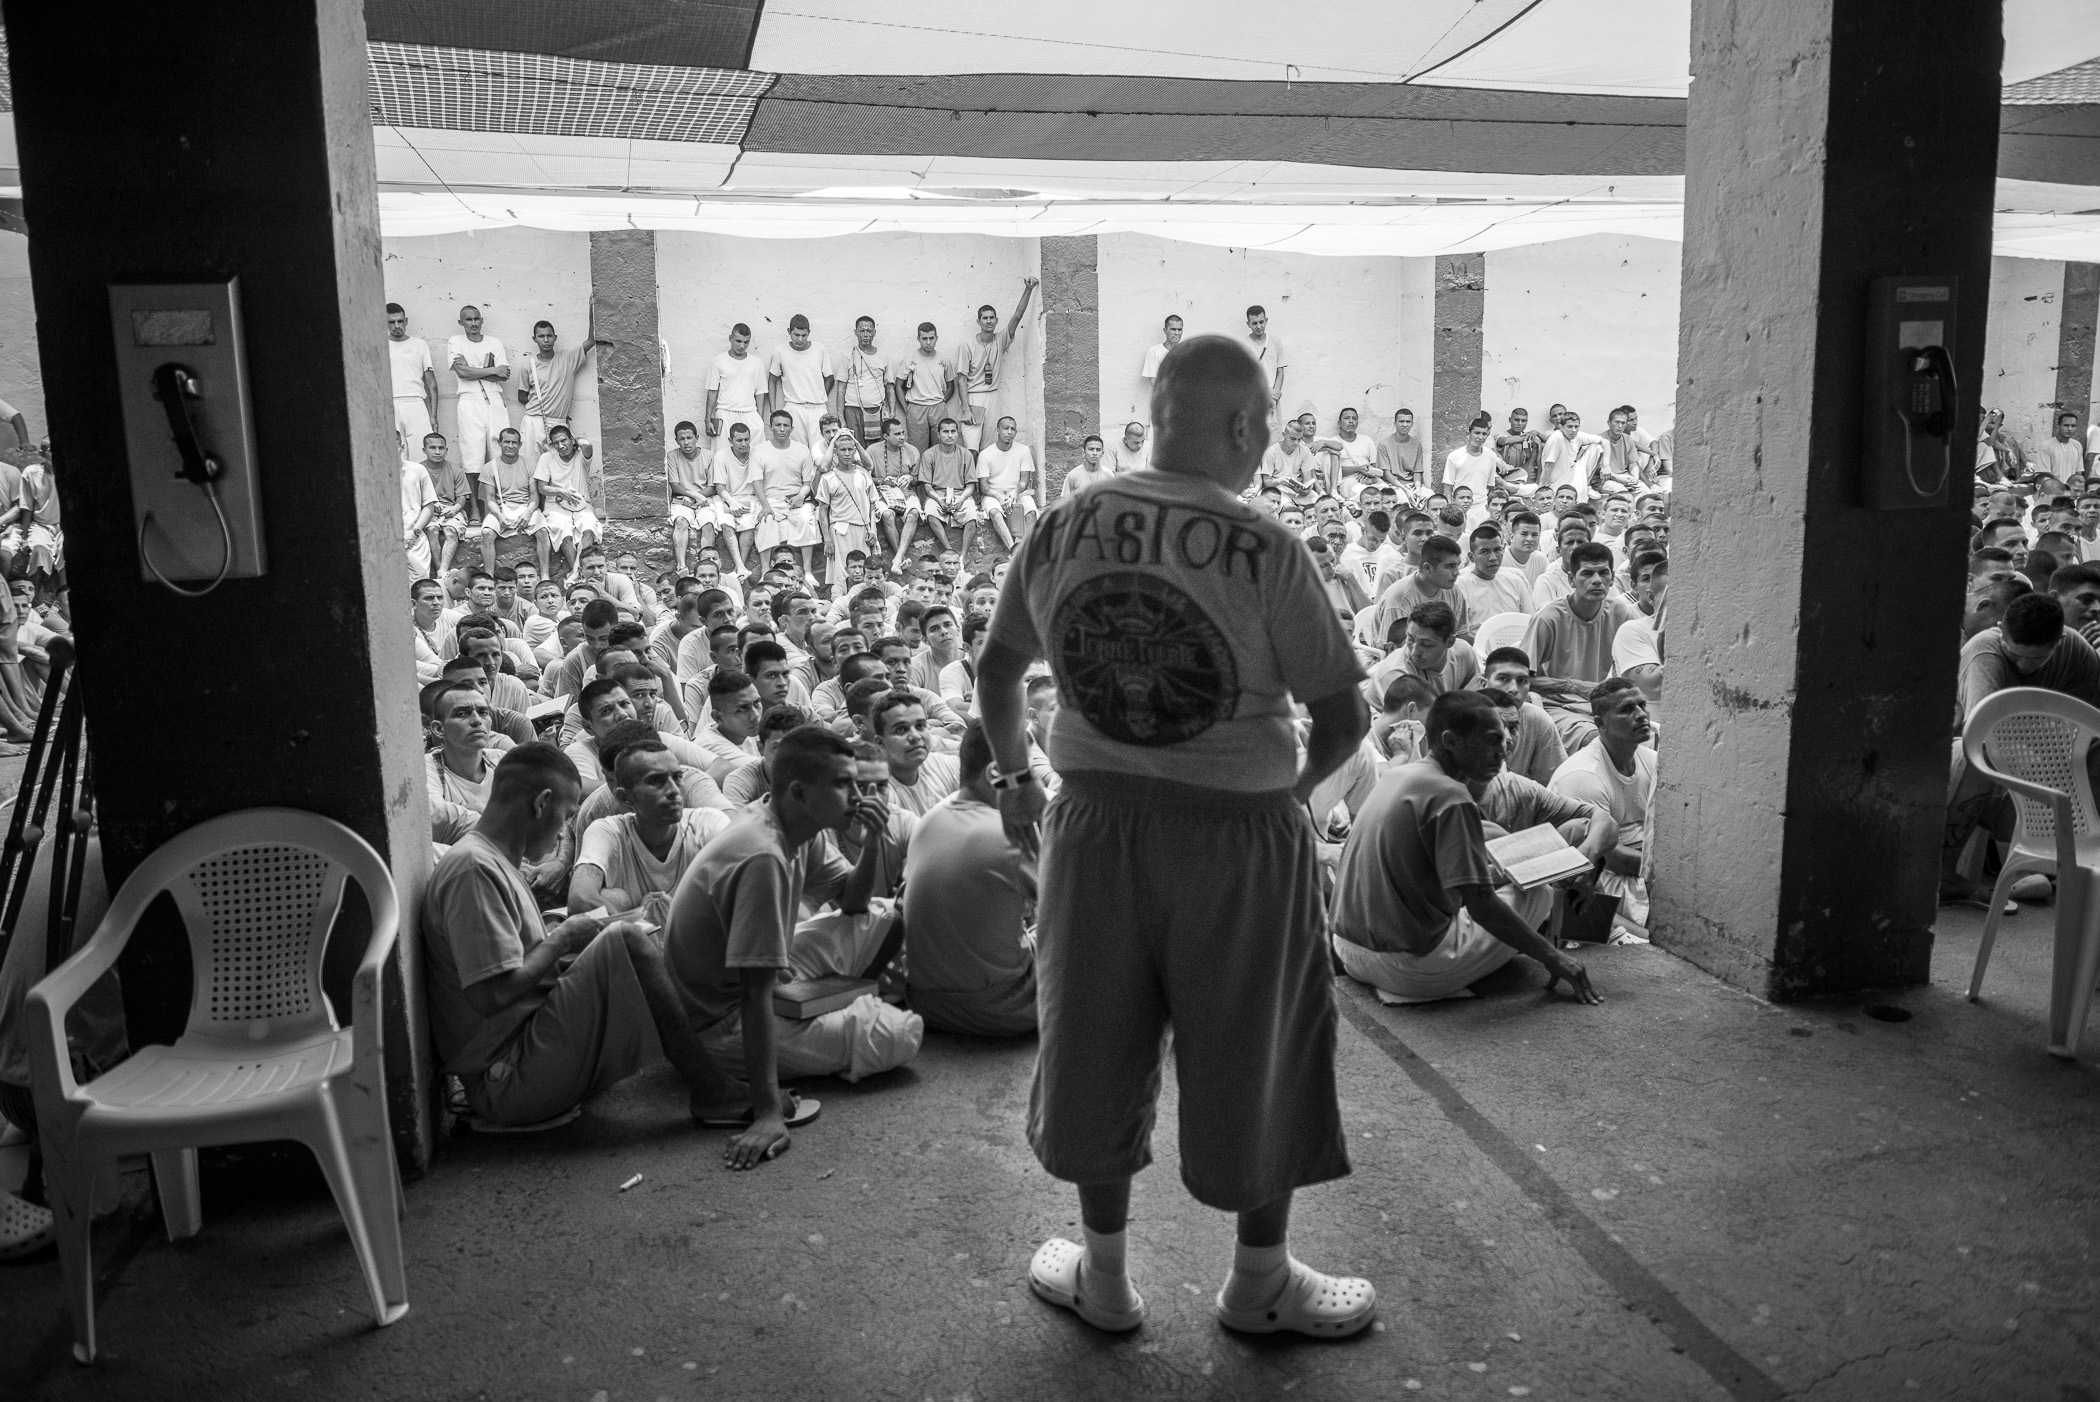 At the time of a worship, Manuel Rivera, pastor of the Strong Tower church looks at the prisoners, while the jail director is giving a speach in front of the 827 prisoners of the 1,2,3 yards of La Gotera's jail. This part of the jail is recently converted to Christianity. According to the jail director Oscar Benavides, 120 gang leaders were converted to Christianity in the last months.